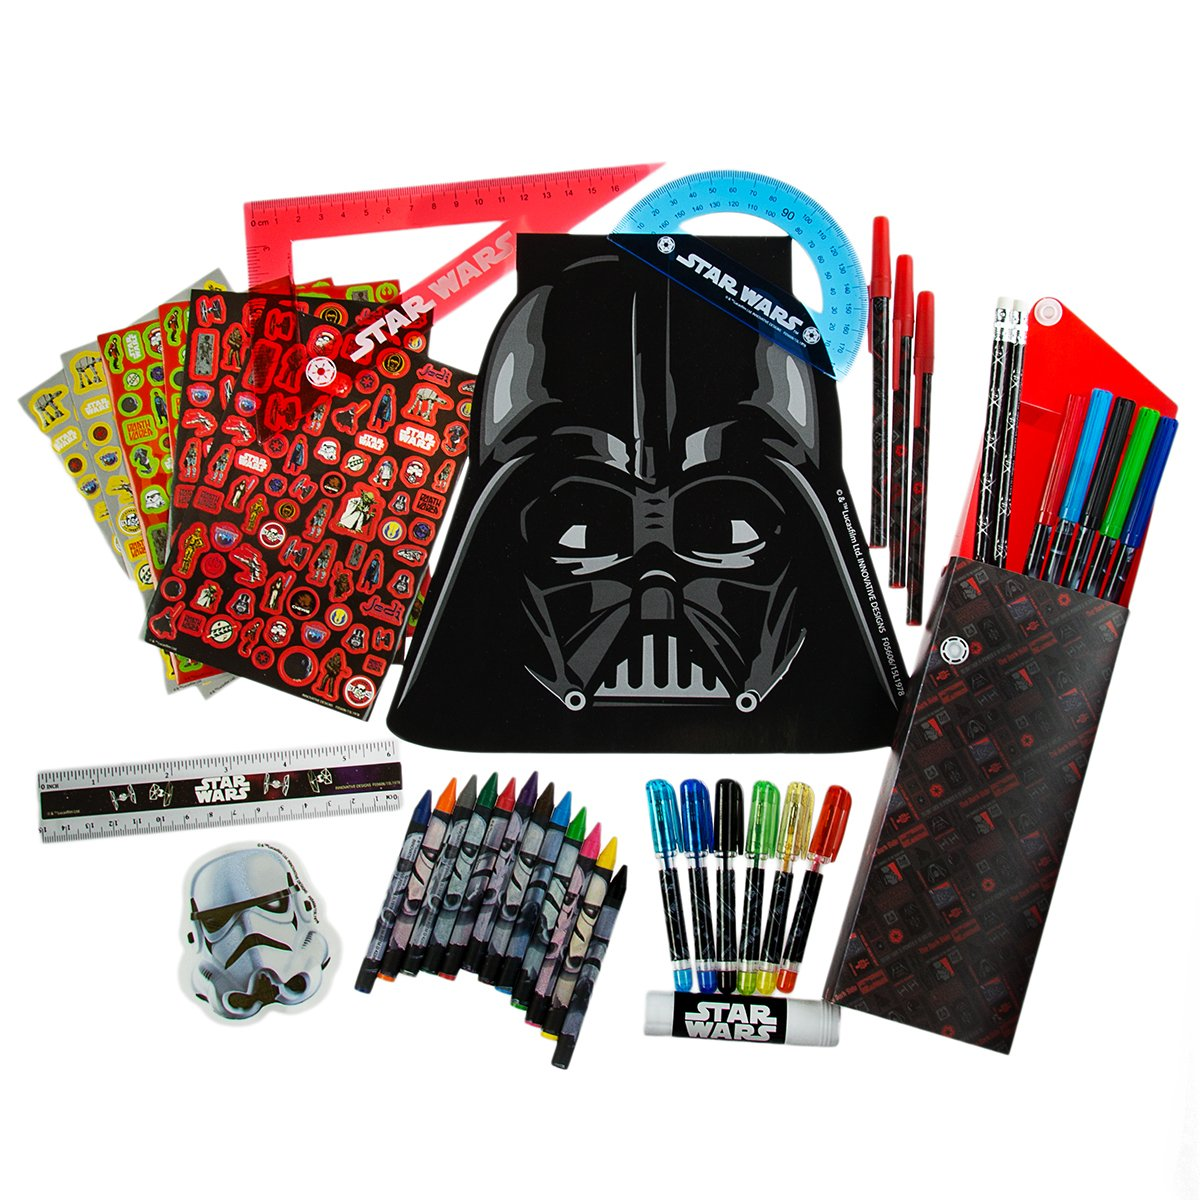 Innovative Designs Star Wars Ultimate Creative Art Kit Set for Kids Markers Pens Pencils Notepad, 200 Pieces Disney 4336945672